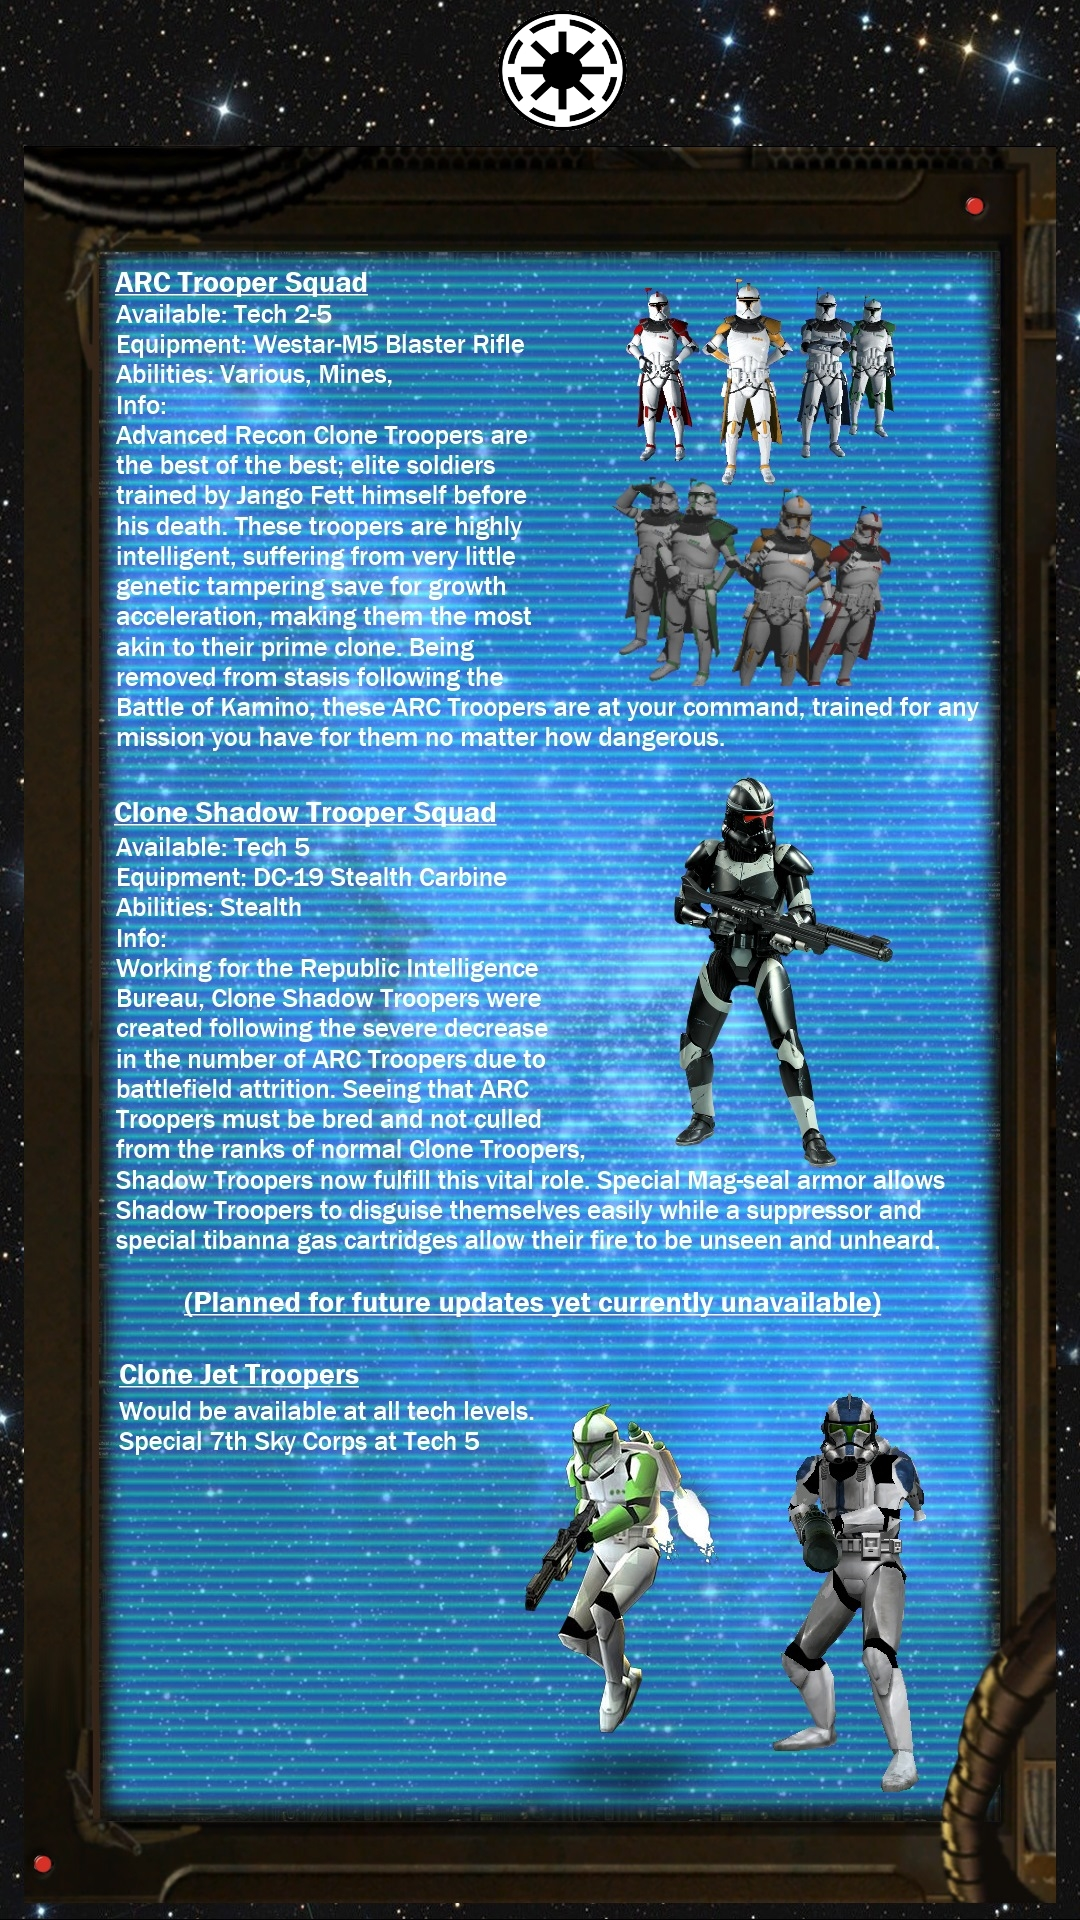 Legends Mod: The Clone Wars, A Guide to Infantry feature